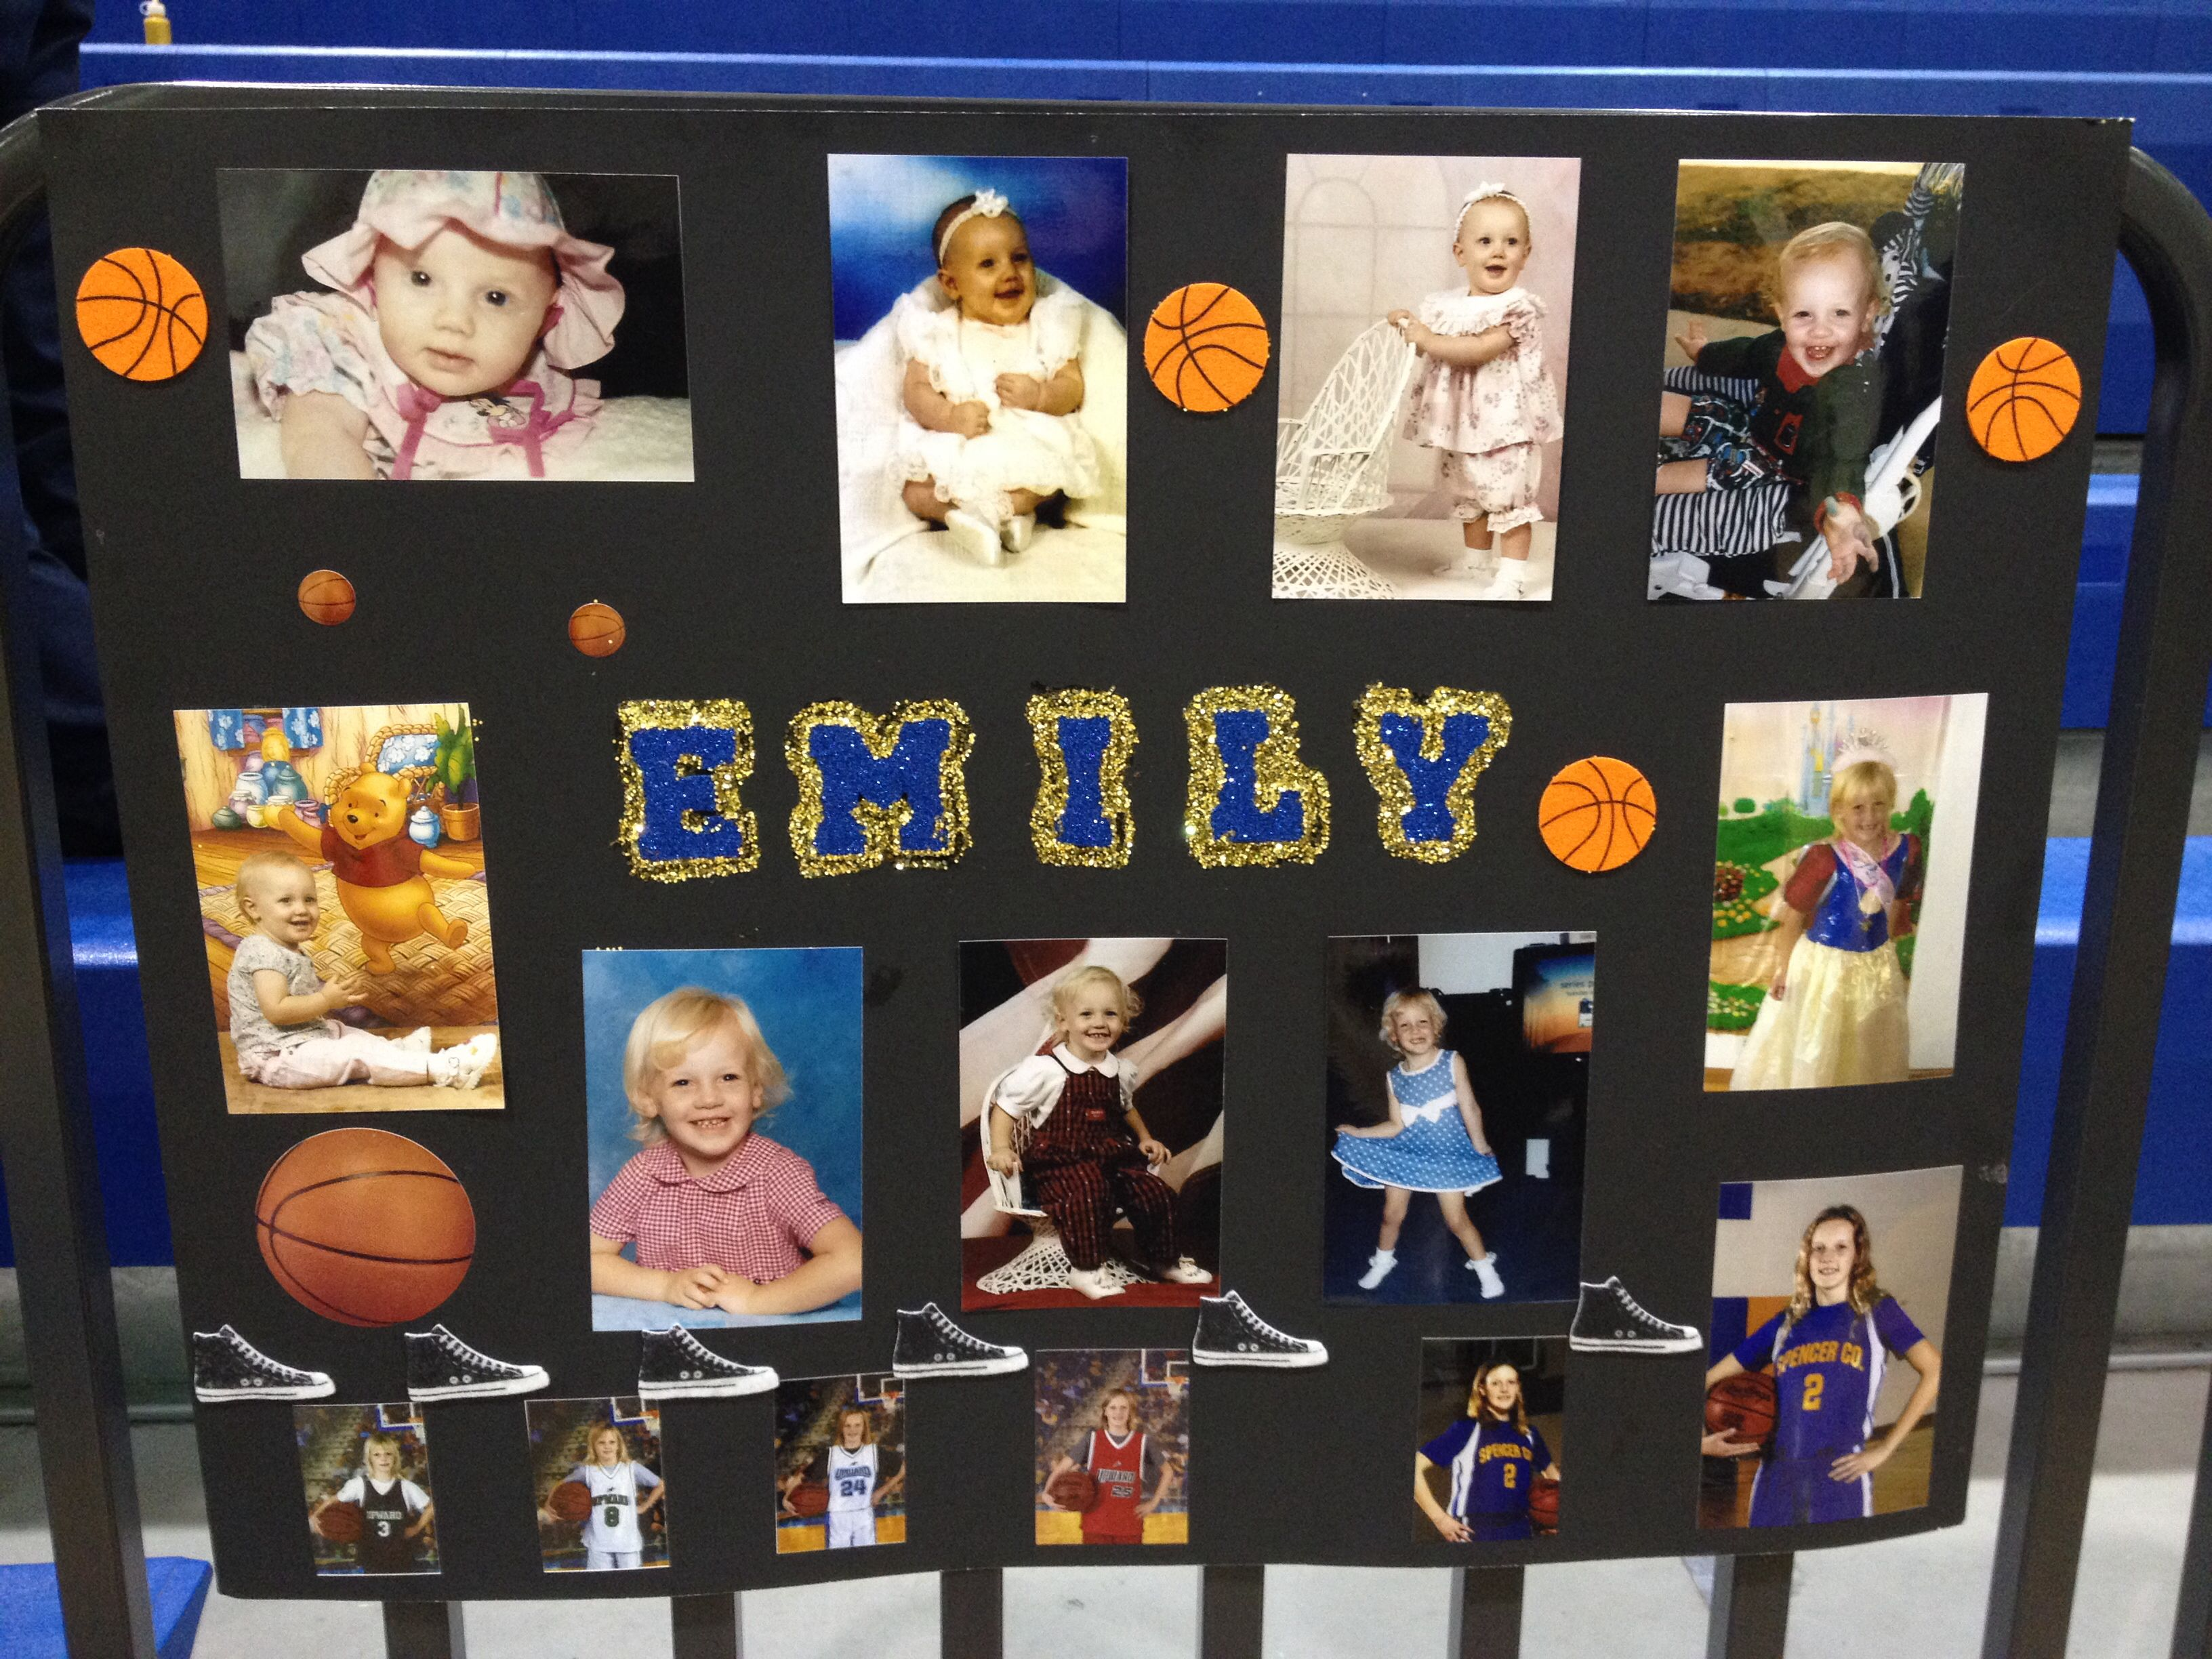 Eighth Grade Night Poster The Girls Wanted A Baby Picture Poster So Emily I Made This One I Decided To Put Her Ba Baby Pictures Diy Crochet Patterns Basket